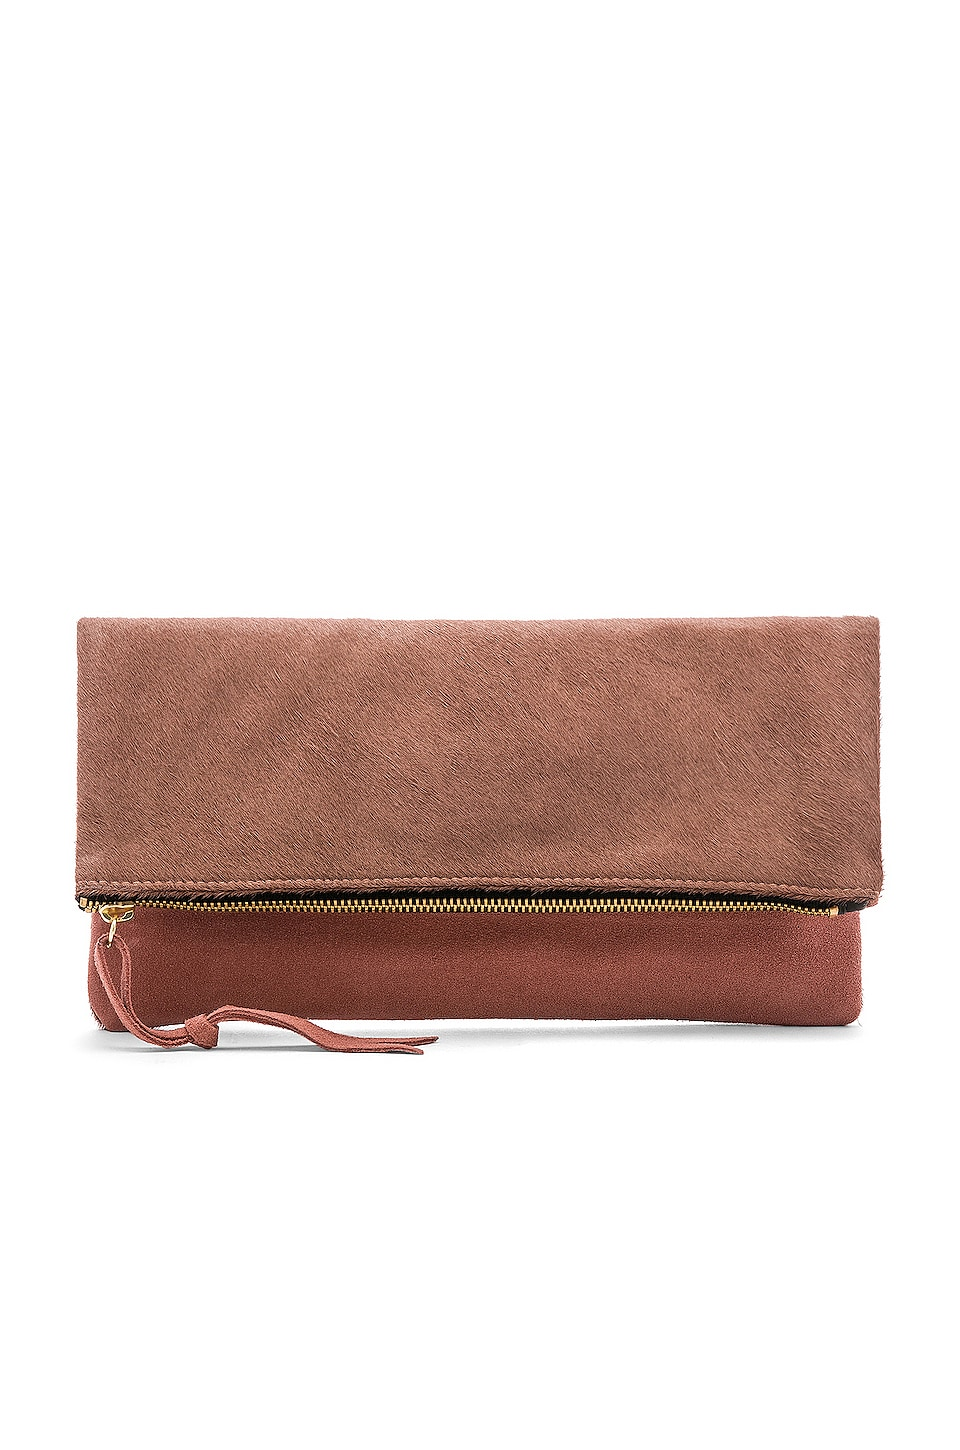 OLIVEVE Anastasia Clutch in Pink